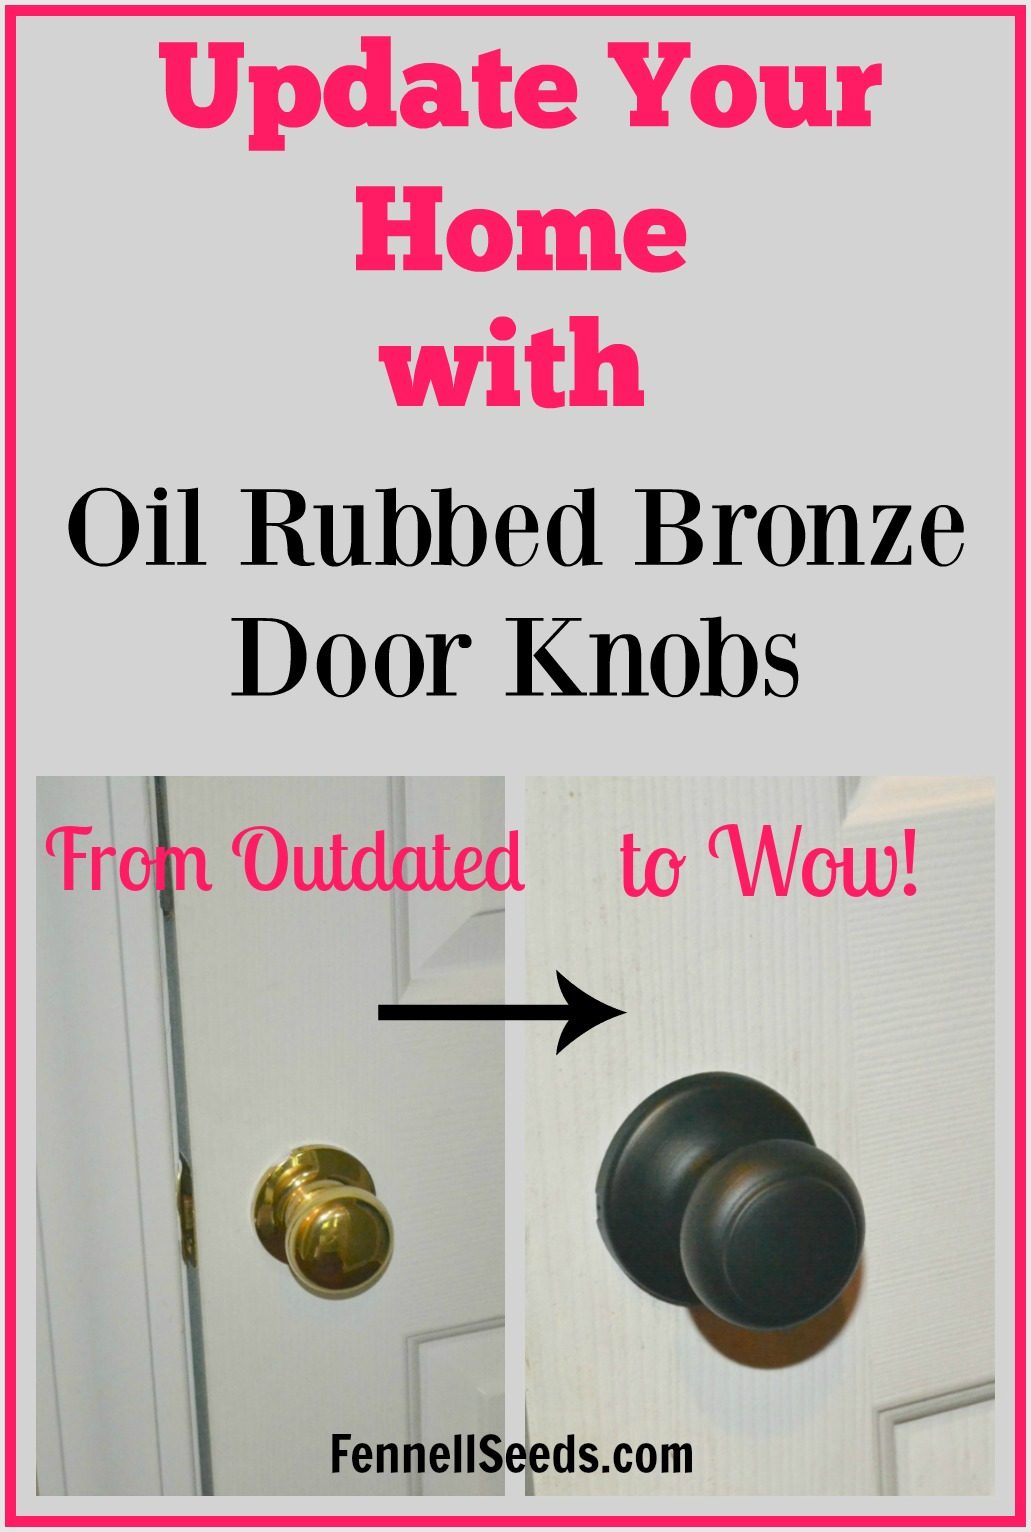 i have been thinking of updating to oil rubbed bronze door knobs i love all - Oil Rubbed Bronze Door Knobs